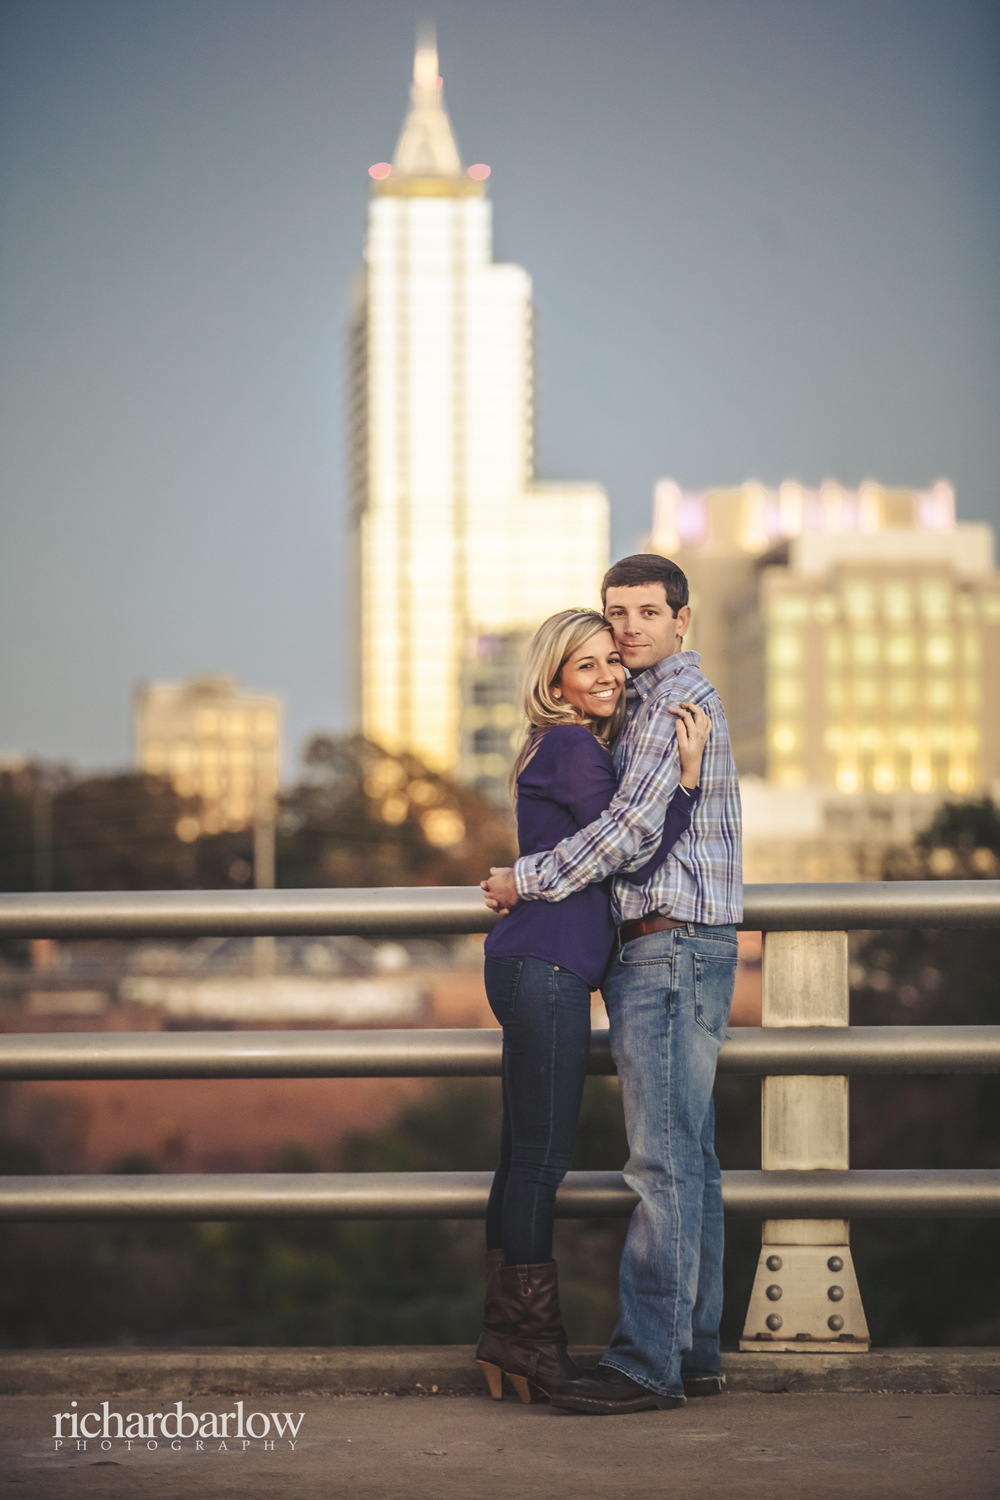 richard barlow photography - Garrett and Heather Engagement Session Raleigh-27.jpg